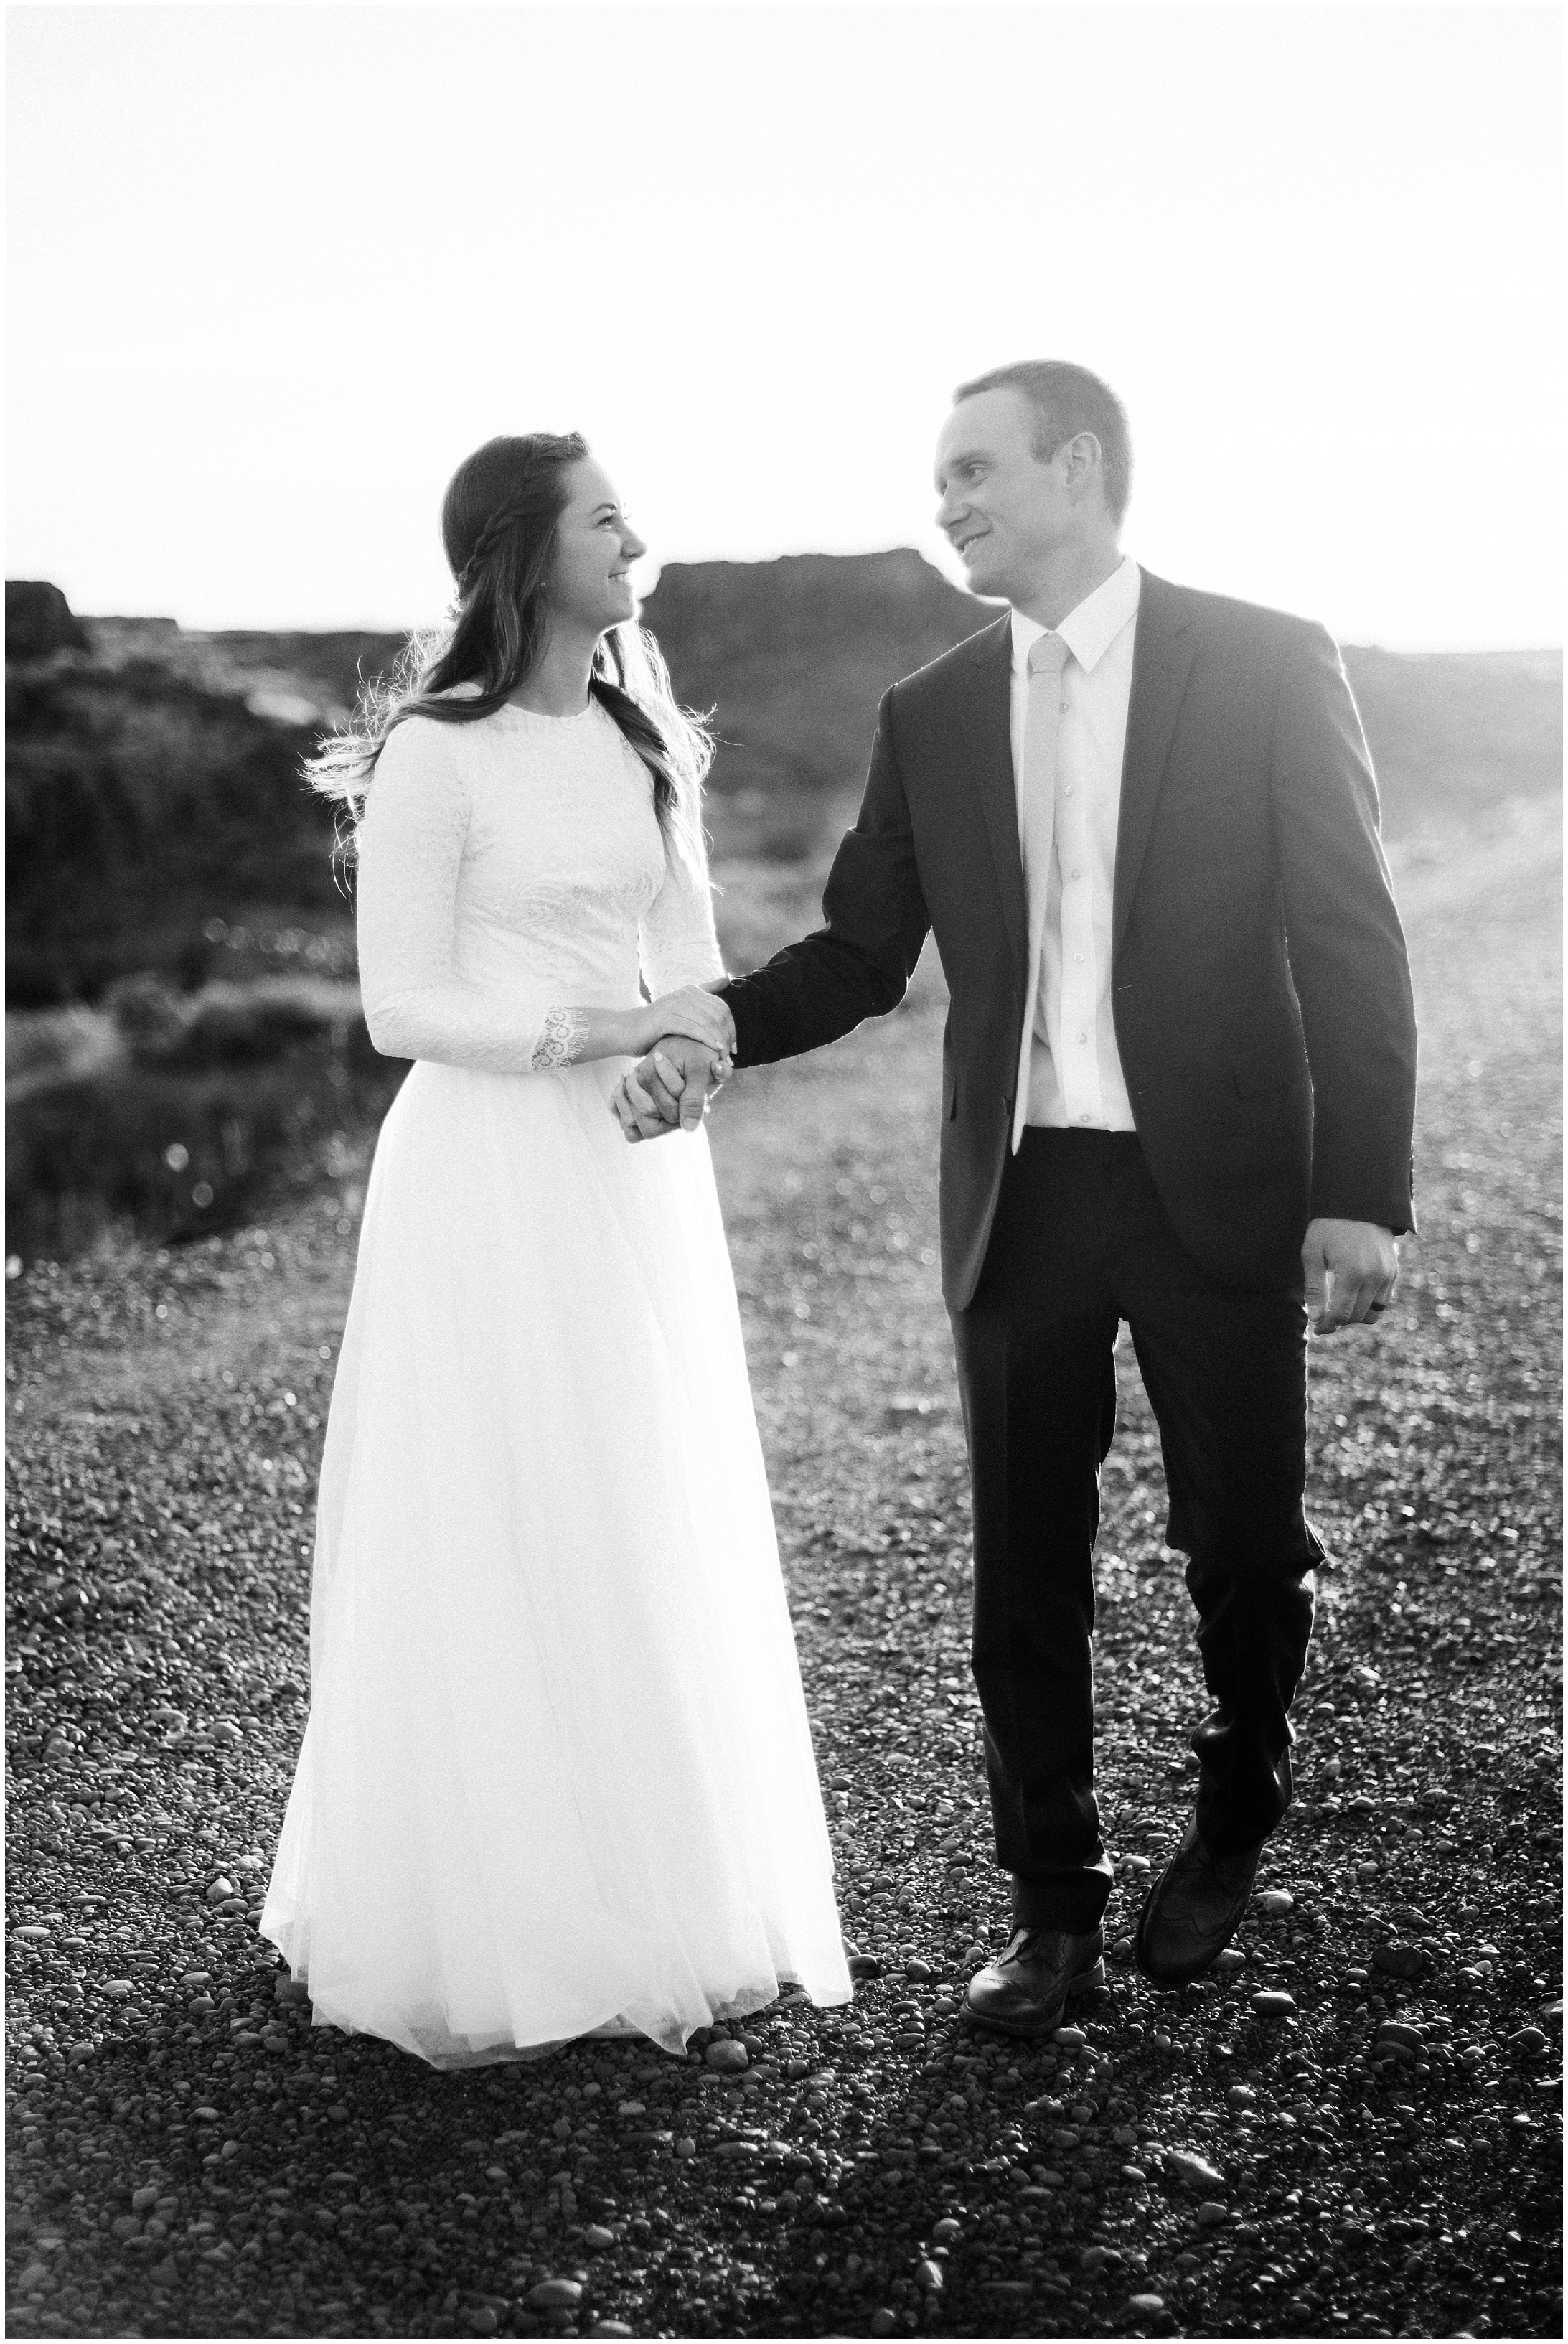 Black and white photo of a bride and groom walking along a road by Forthright Photo